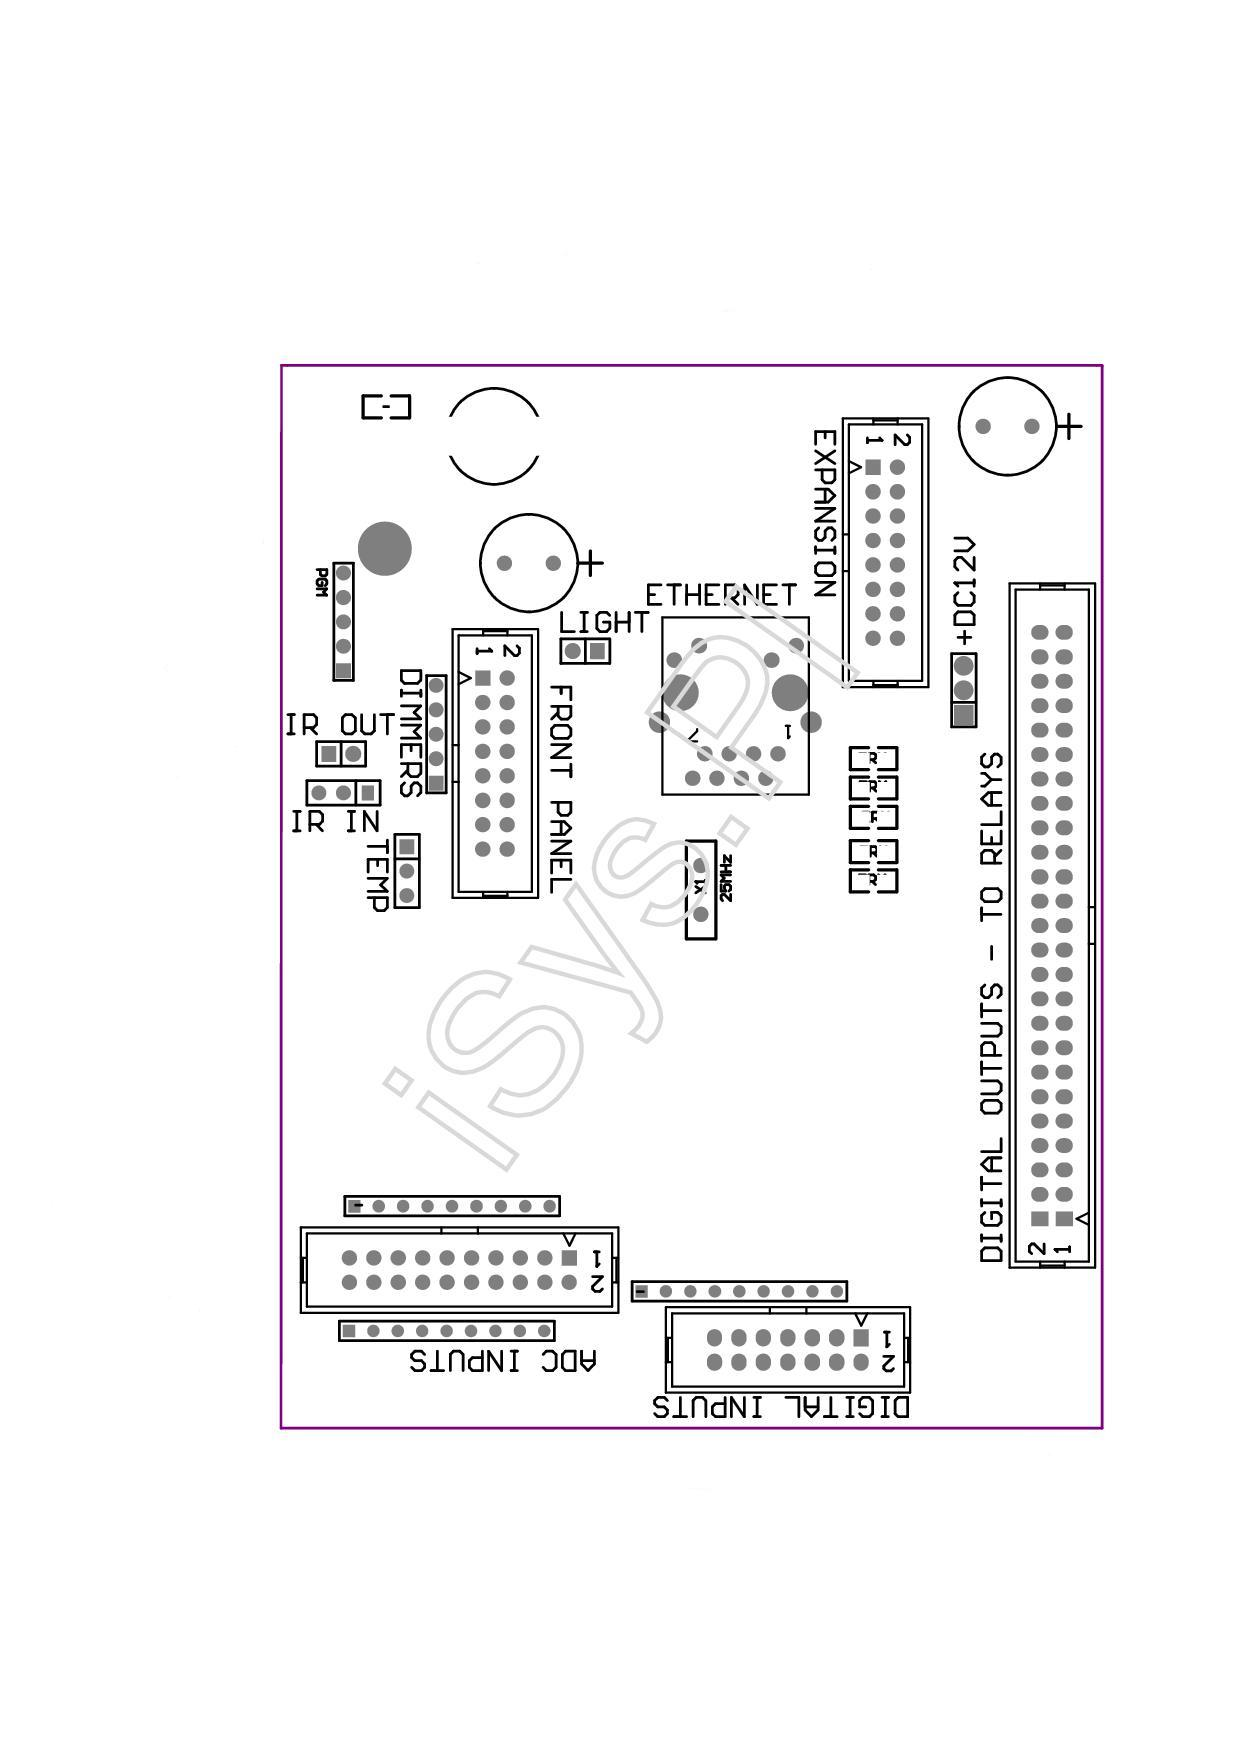 Ethernet eHouse - Home Automation System